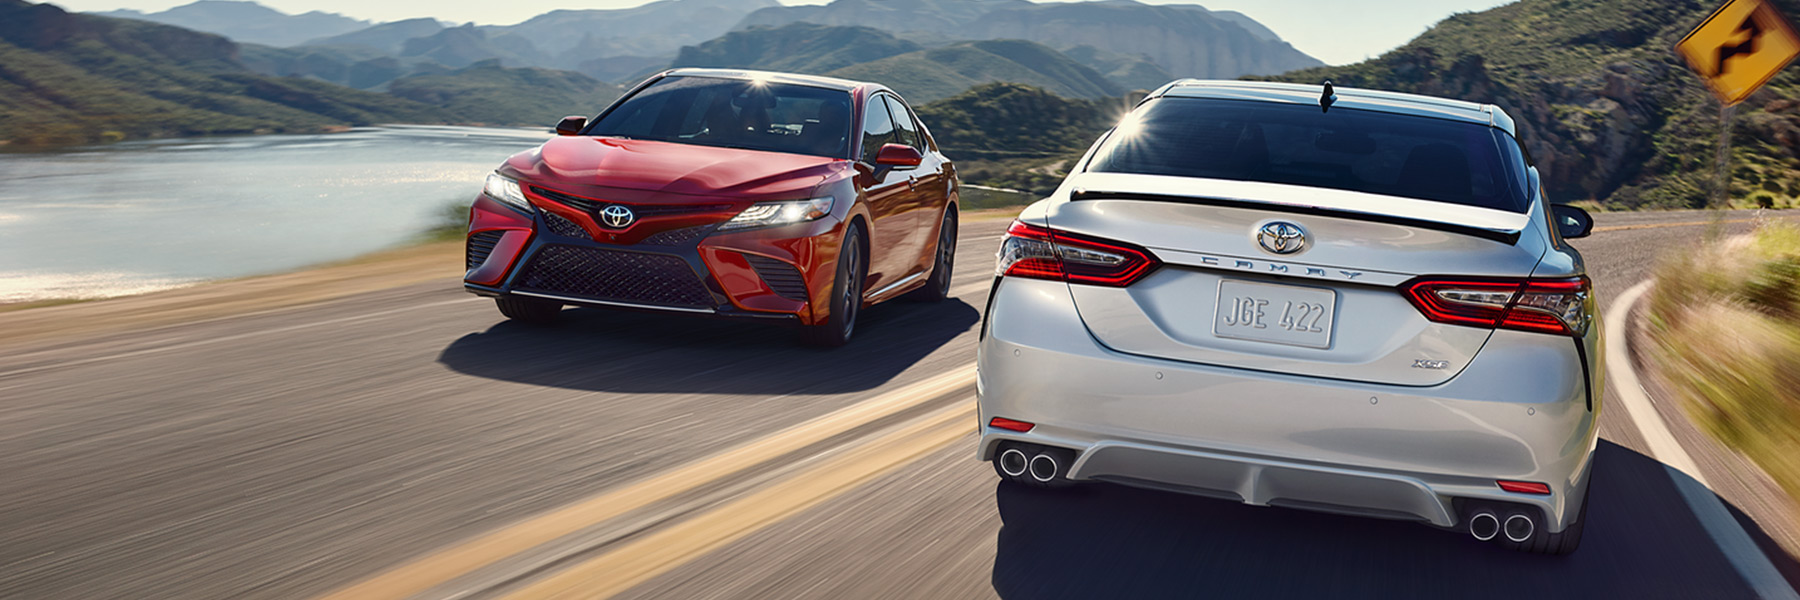 2018-camry-perf